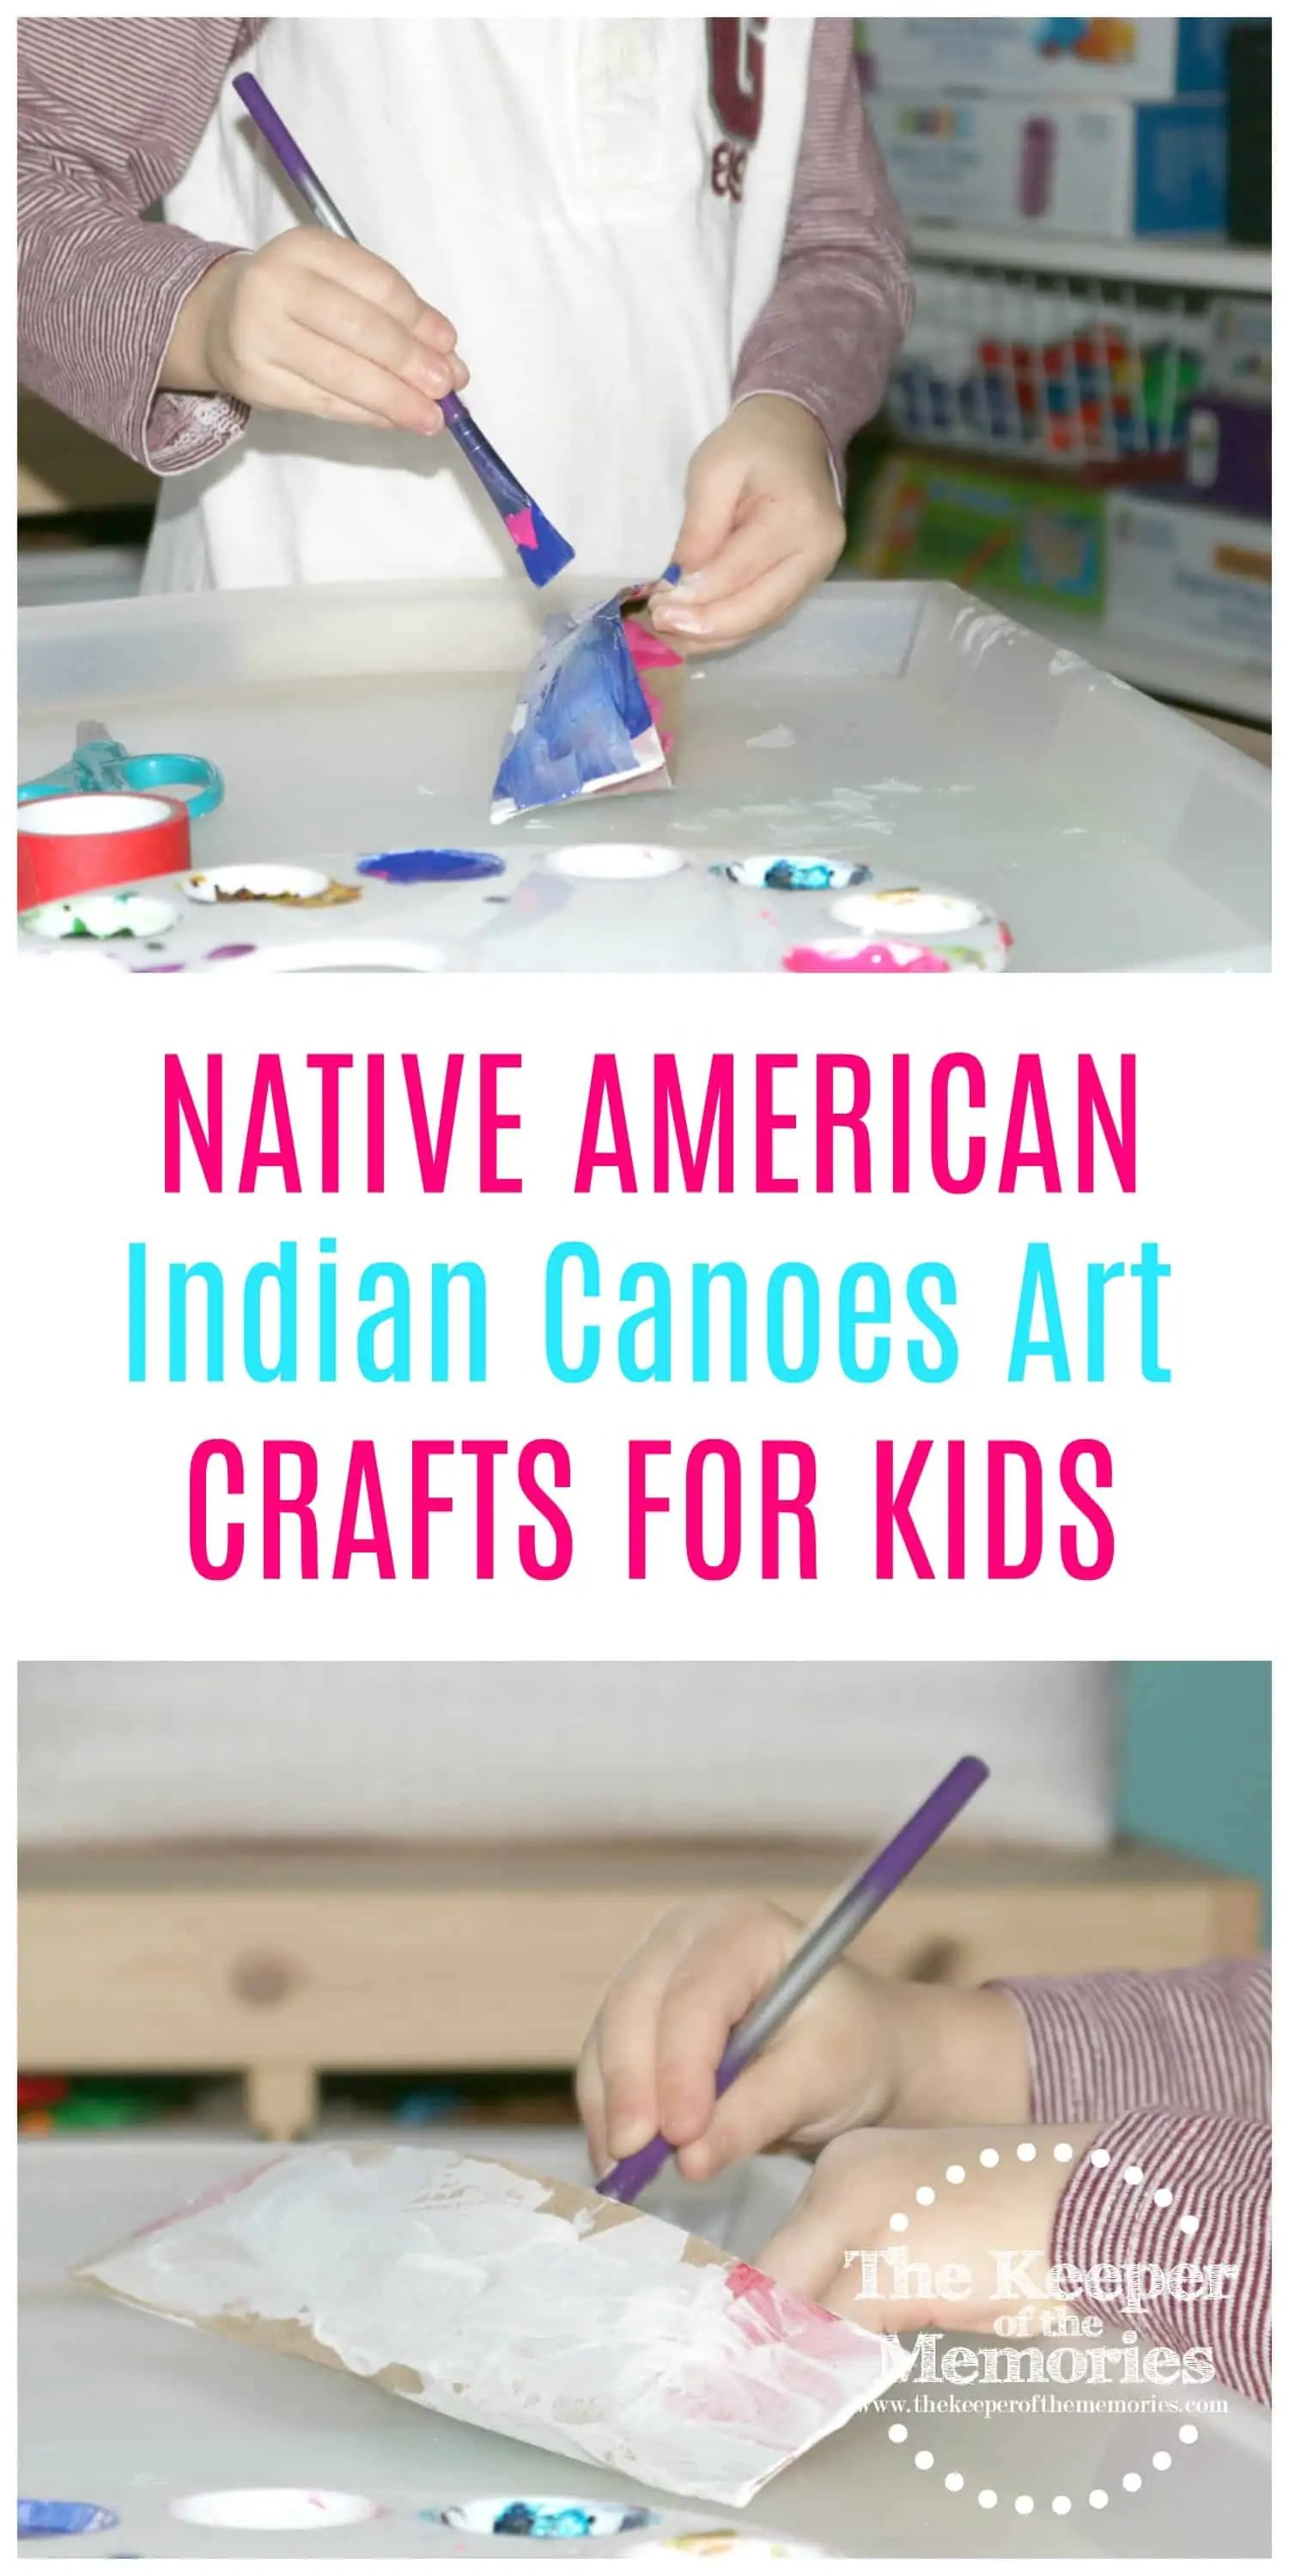 Native American Crafts For Kids Indian Canoes Art 1